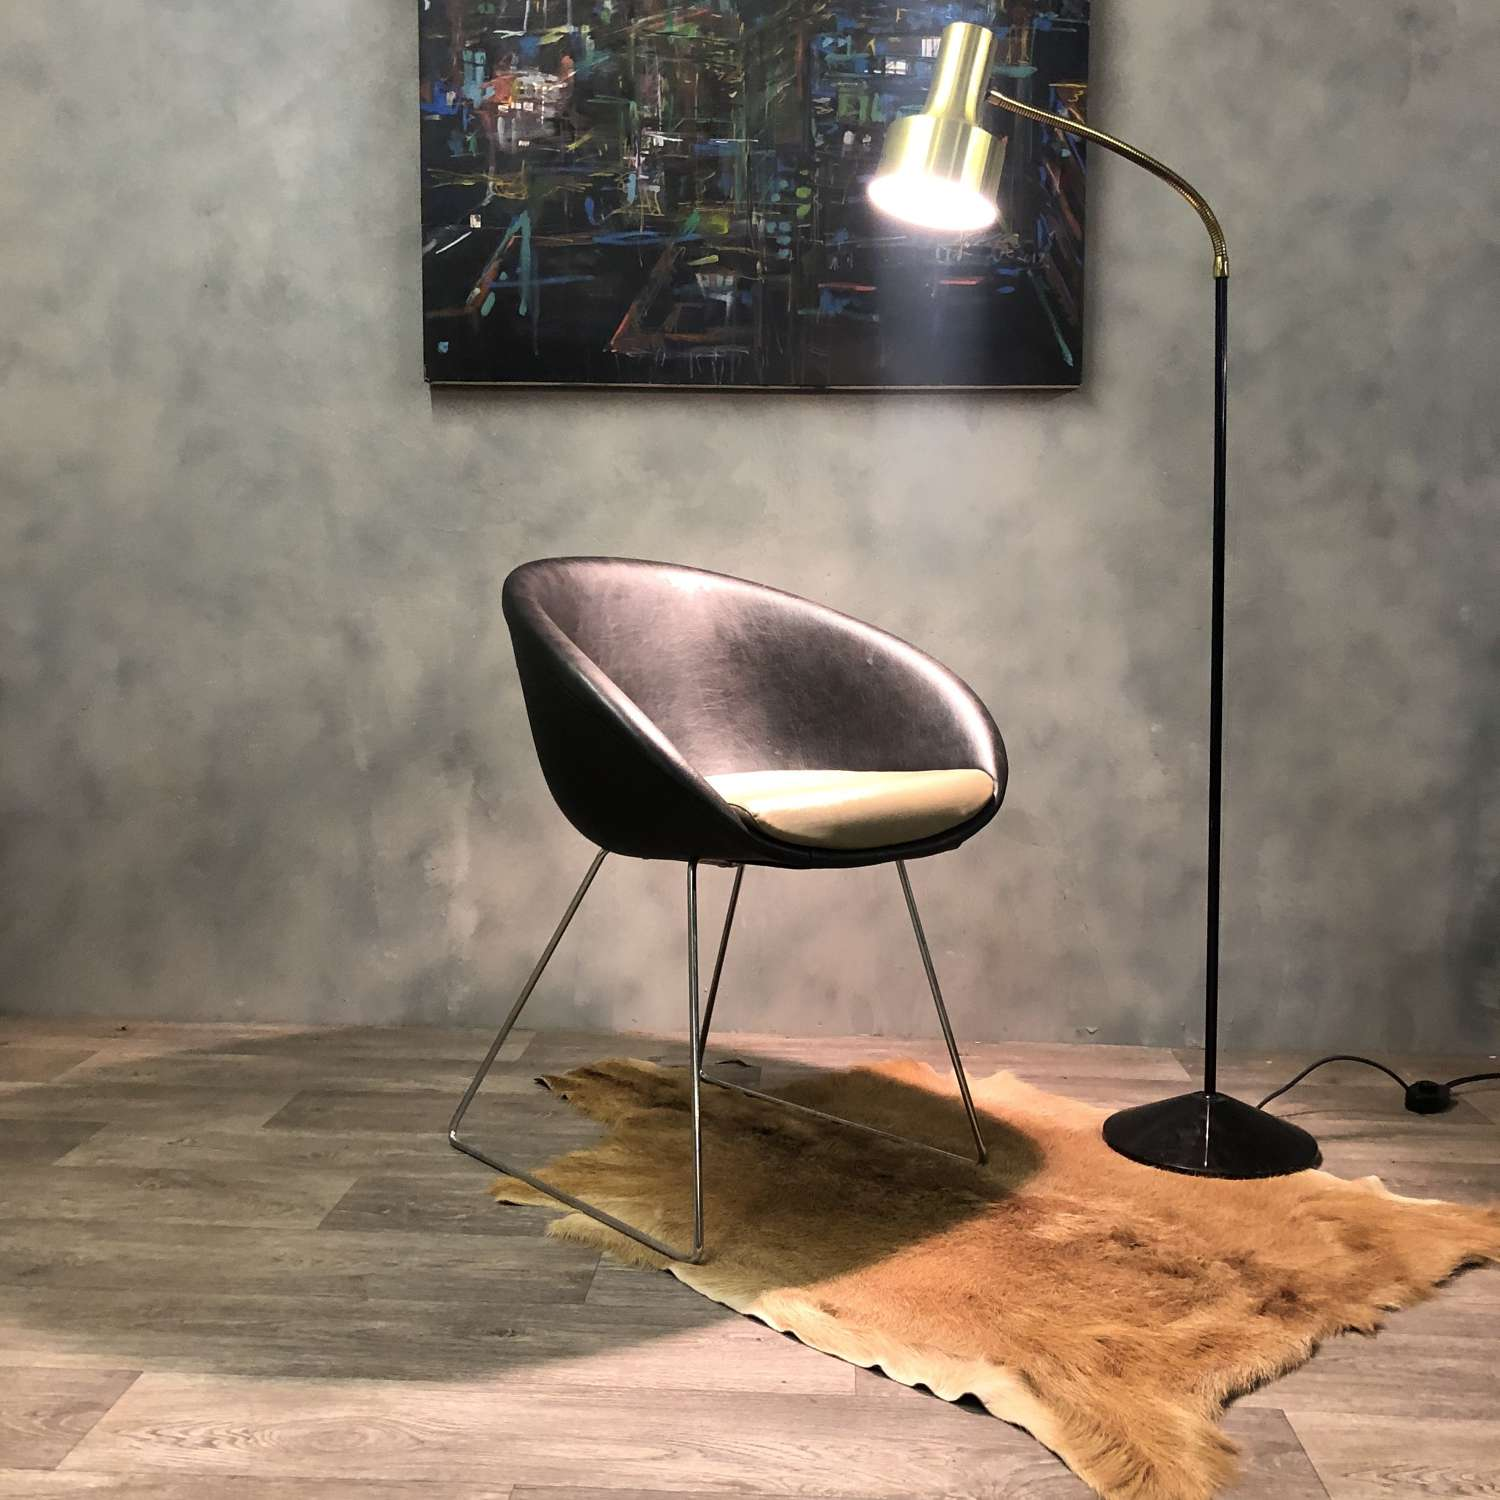 Italian 'Gliss' Leather Chair by Pedrali in Black Olive